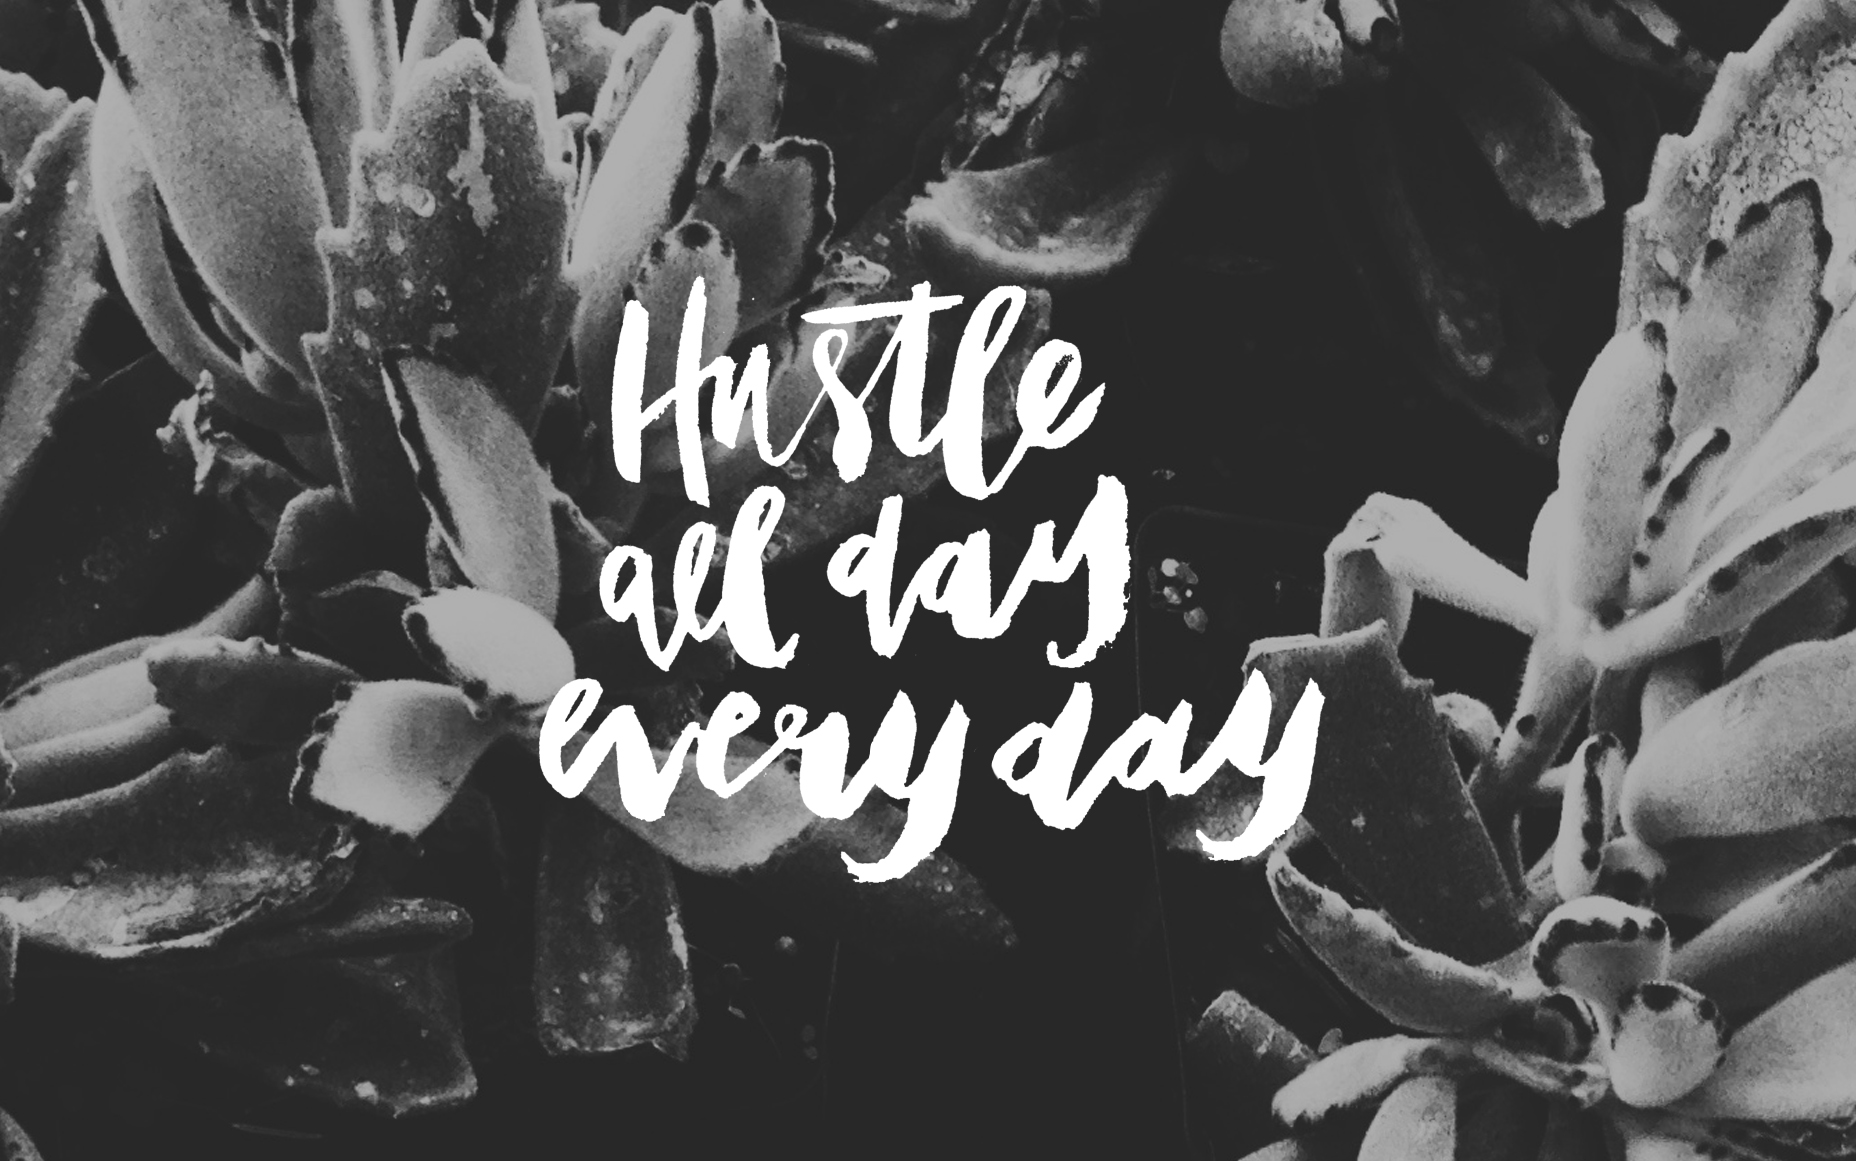 HUSTLE ALL DAY EVERYDAY - WALLPAPER - ©Cristina Martinez of CAUTIOUSLY OBSESSED - White.jpg